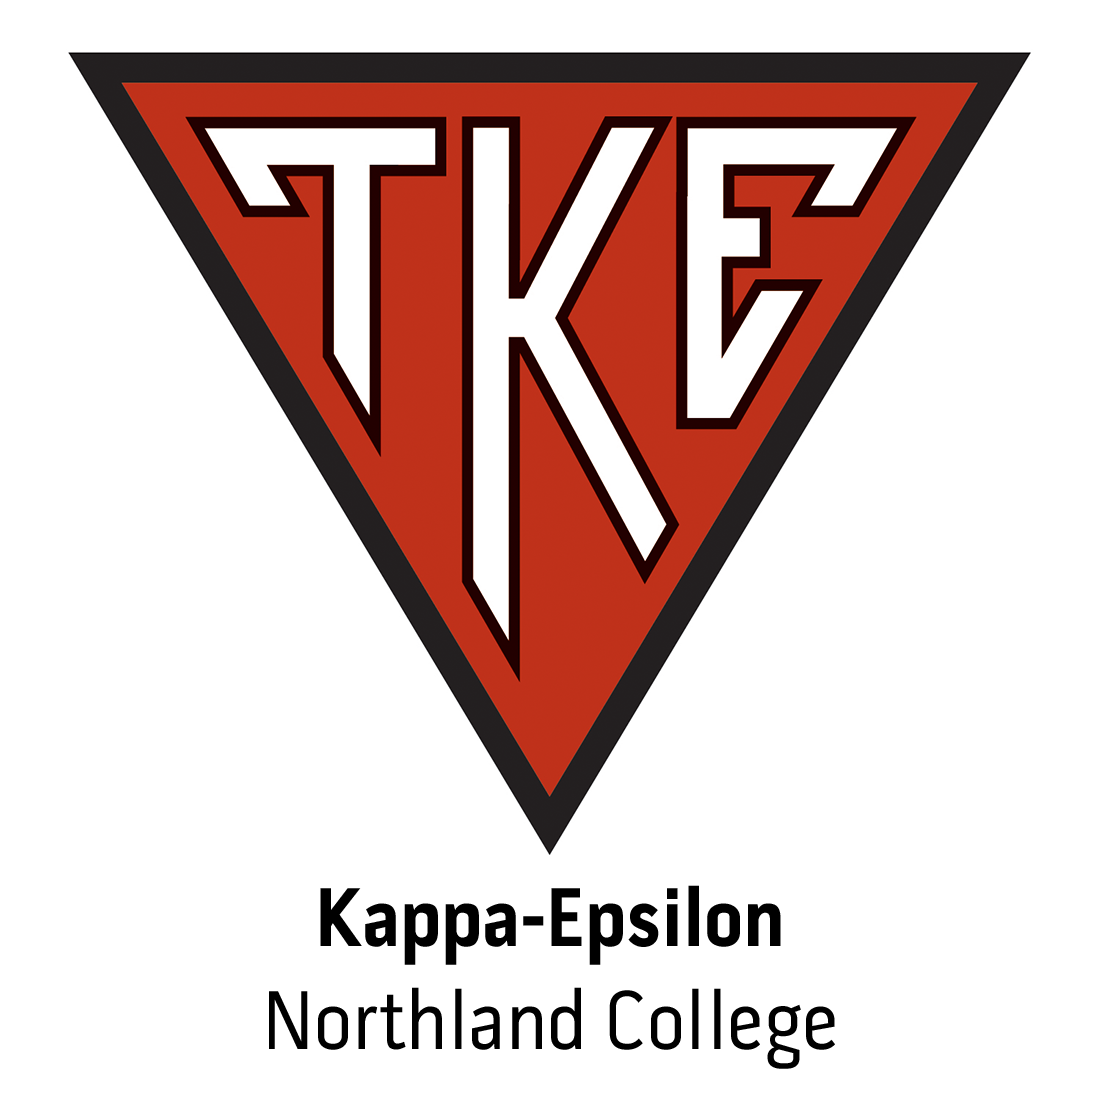 Kappa-Epsilon Chapter at Northland College